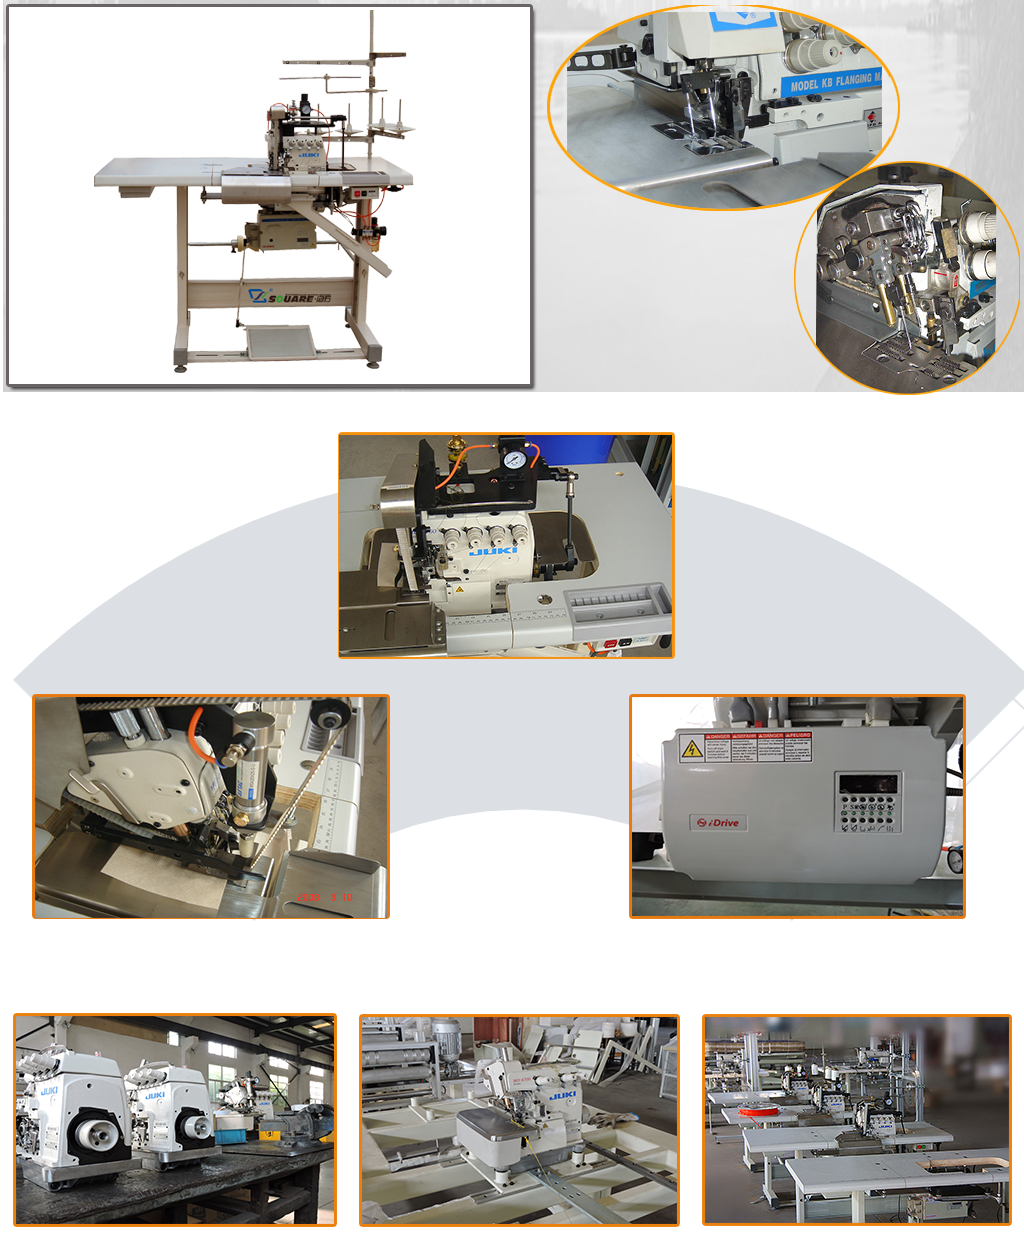 KB4 multifunction flanging machine details